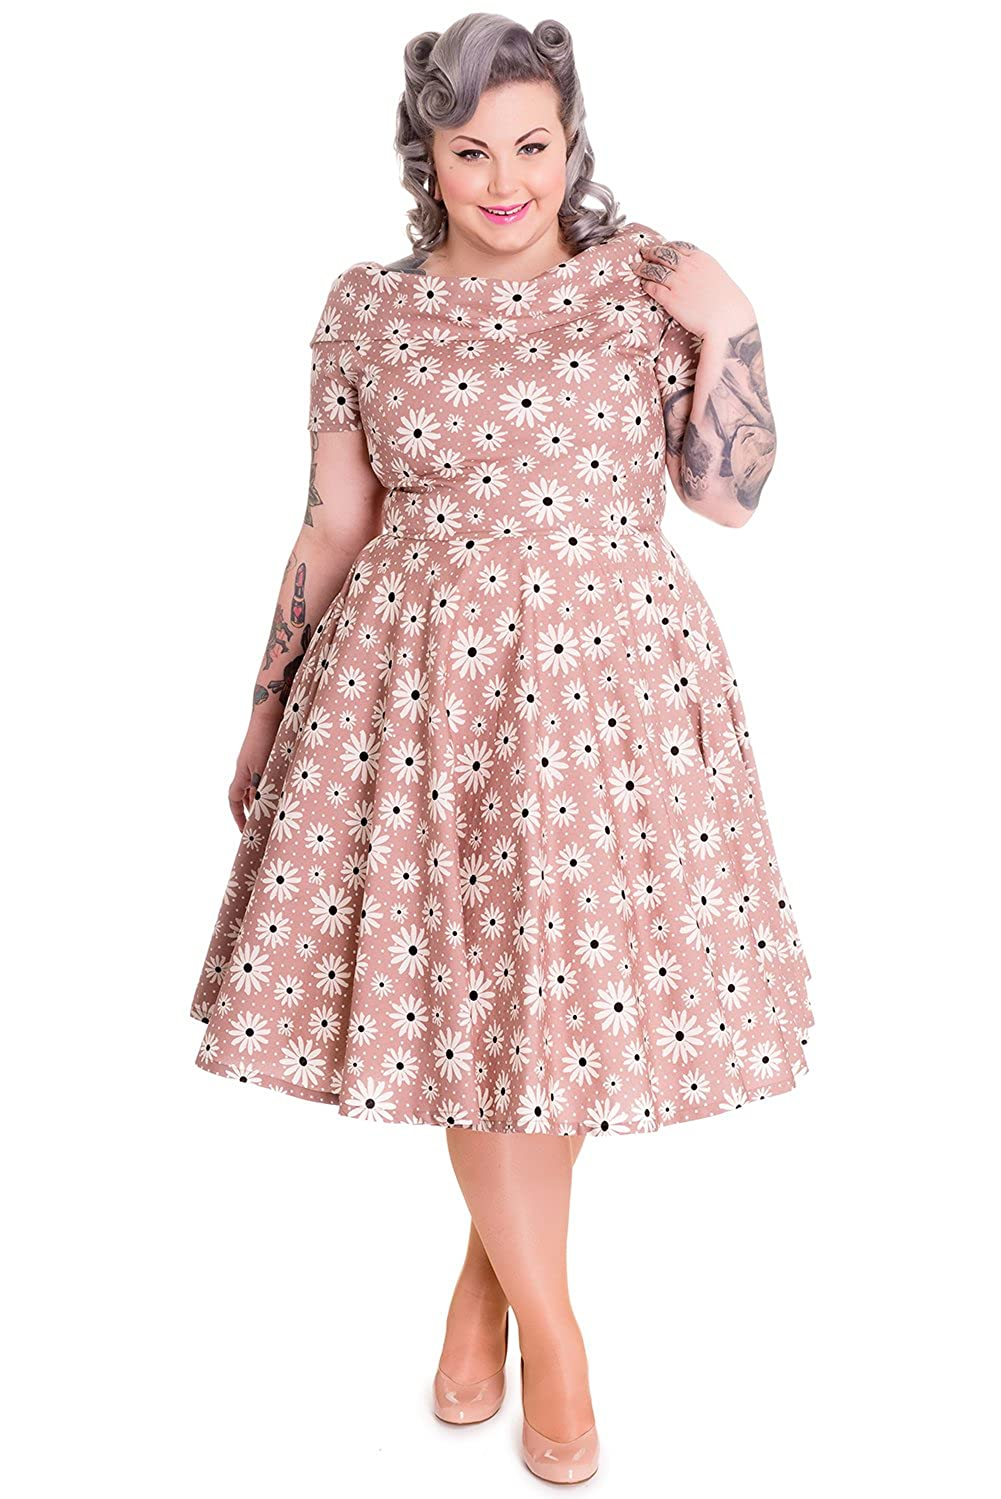 1960s Mad Men Dresses and Clothing Styles Hell Bunny Plus 50s Lovely Lady Daisy Floral Polka Dot Party Dress Latte Brown $78.00 AT vintagedancer.com